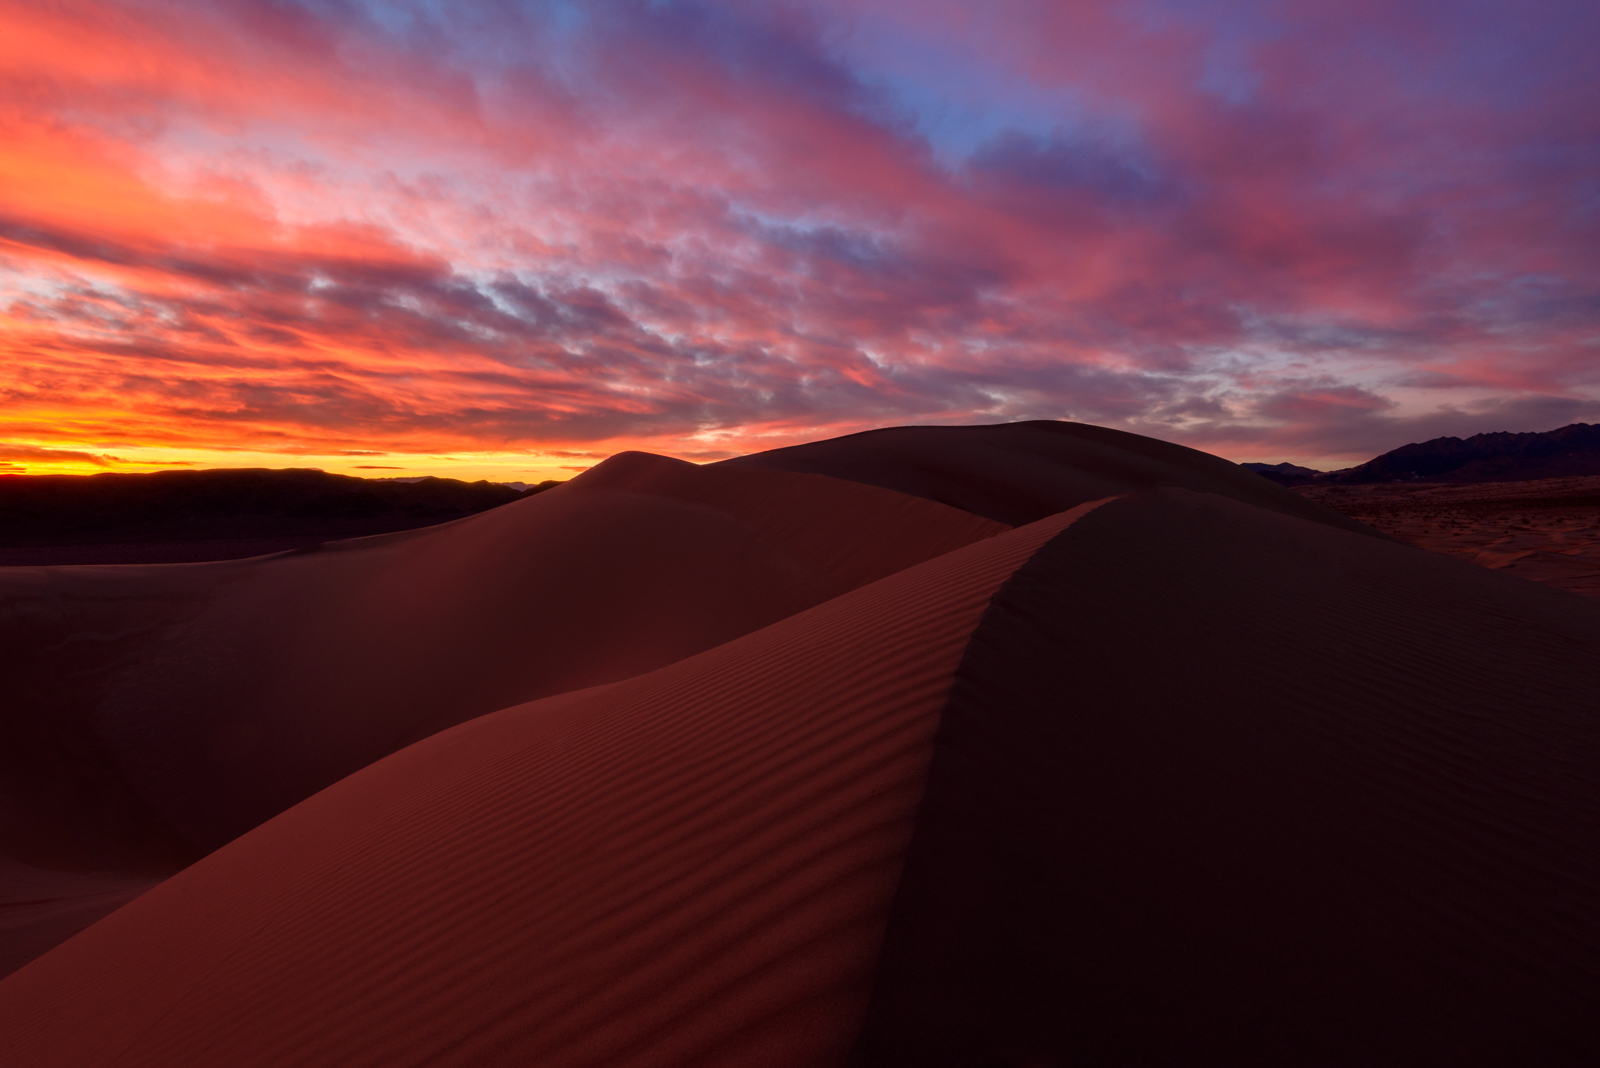 Winter sunset over the Ibex Dunes in Death Valley National Park.